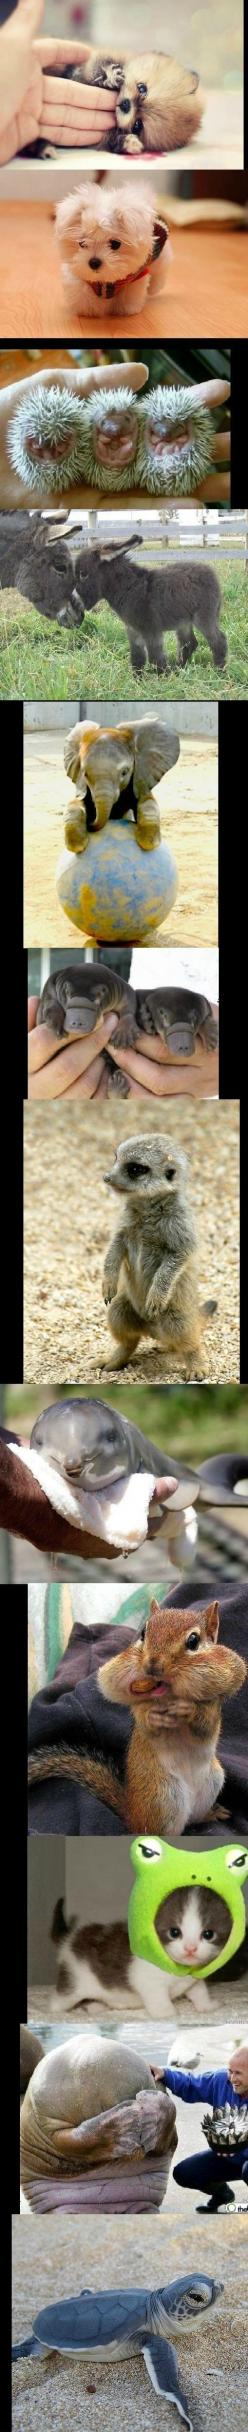 I'll take one of each, please.: Babies, Cute Baby Animals, Baby Animals So, Cute Animals, Cute Babies, Animal Babies